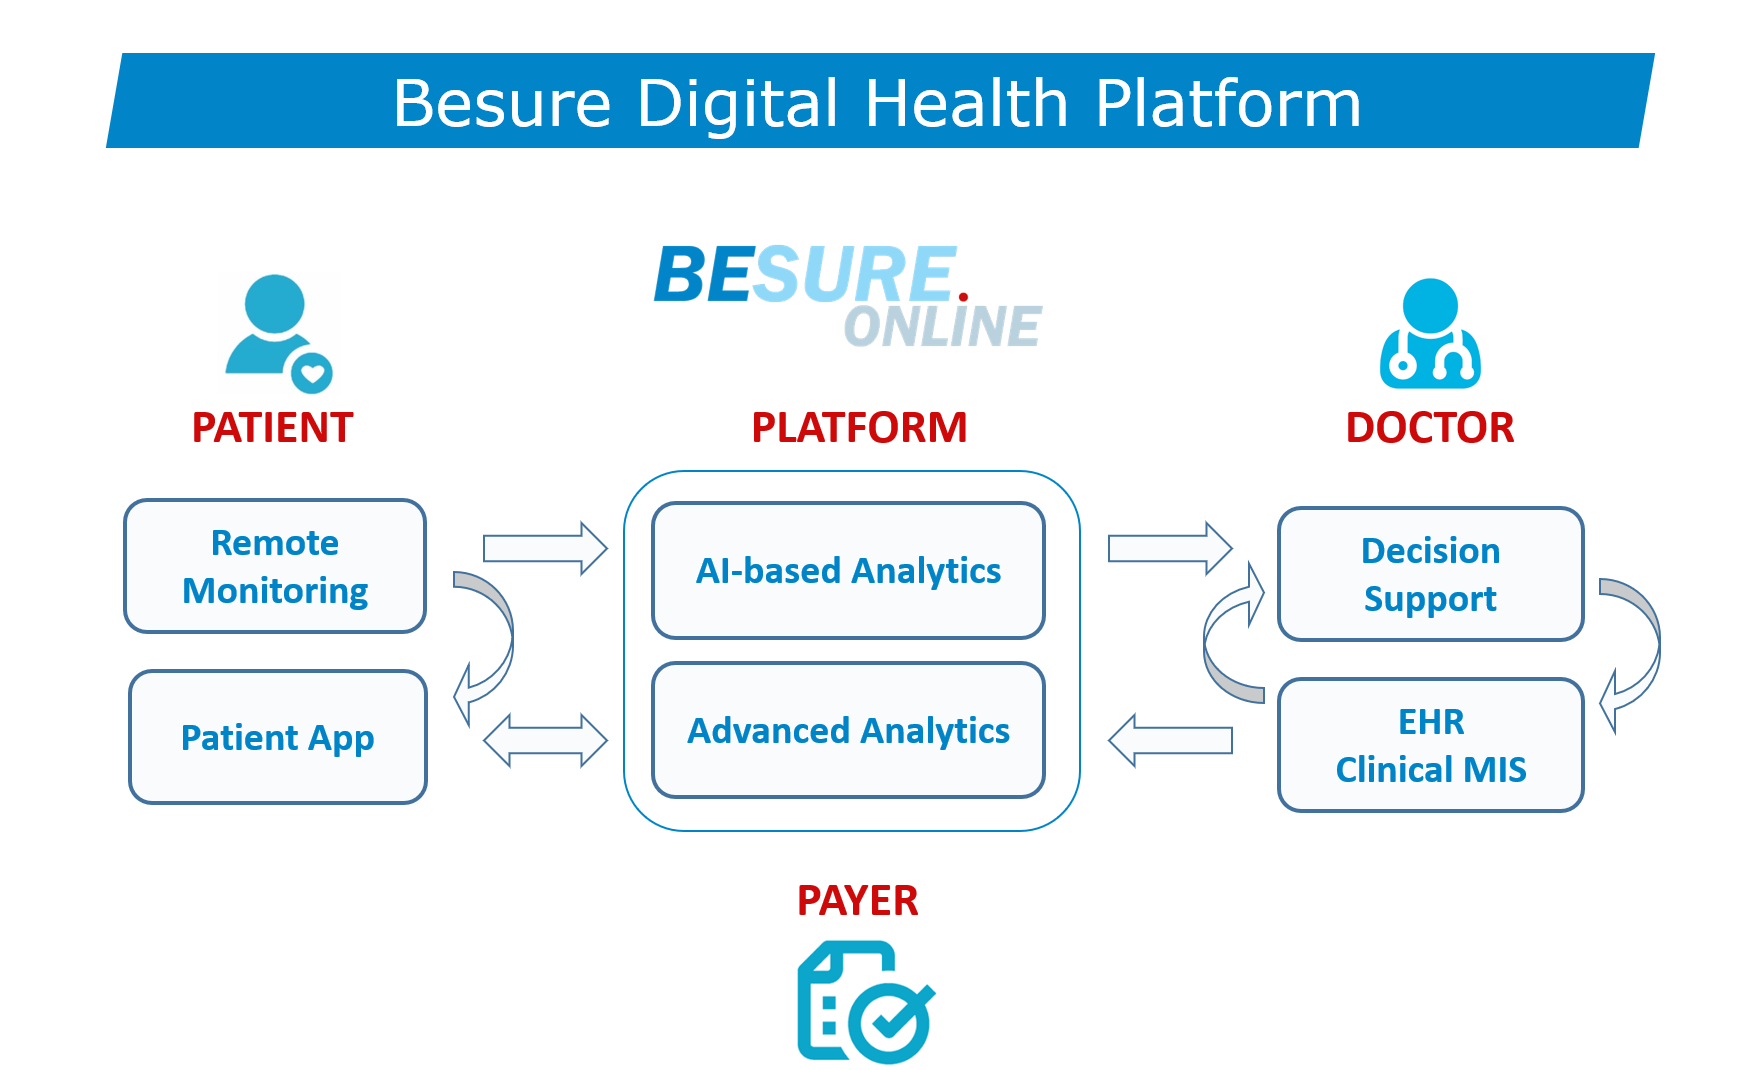 Besure Digital Health Platform